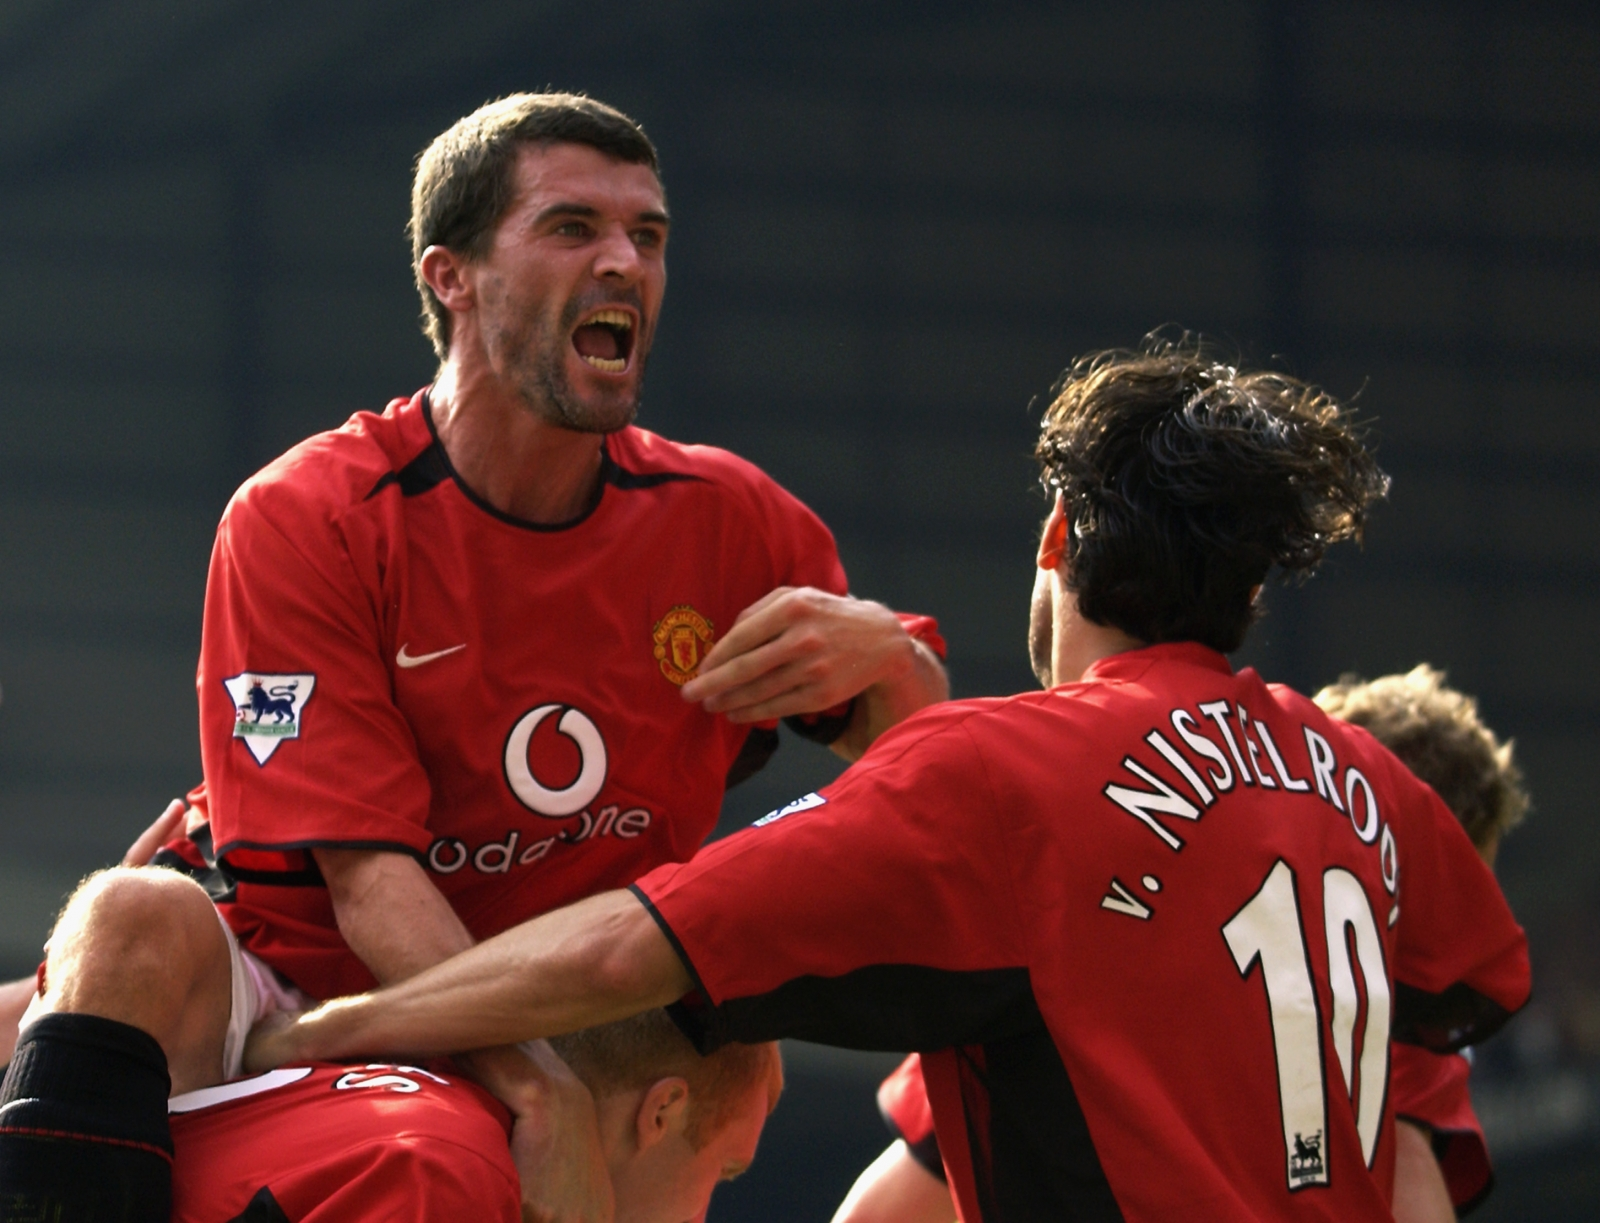 Roy Keane The Most Explosive Extracts from the Former Manchester